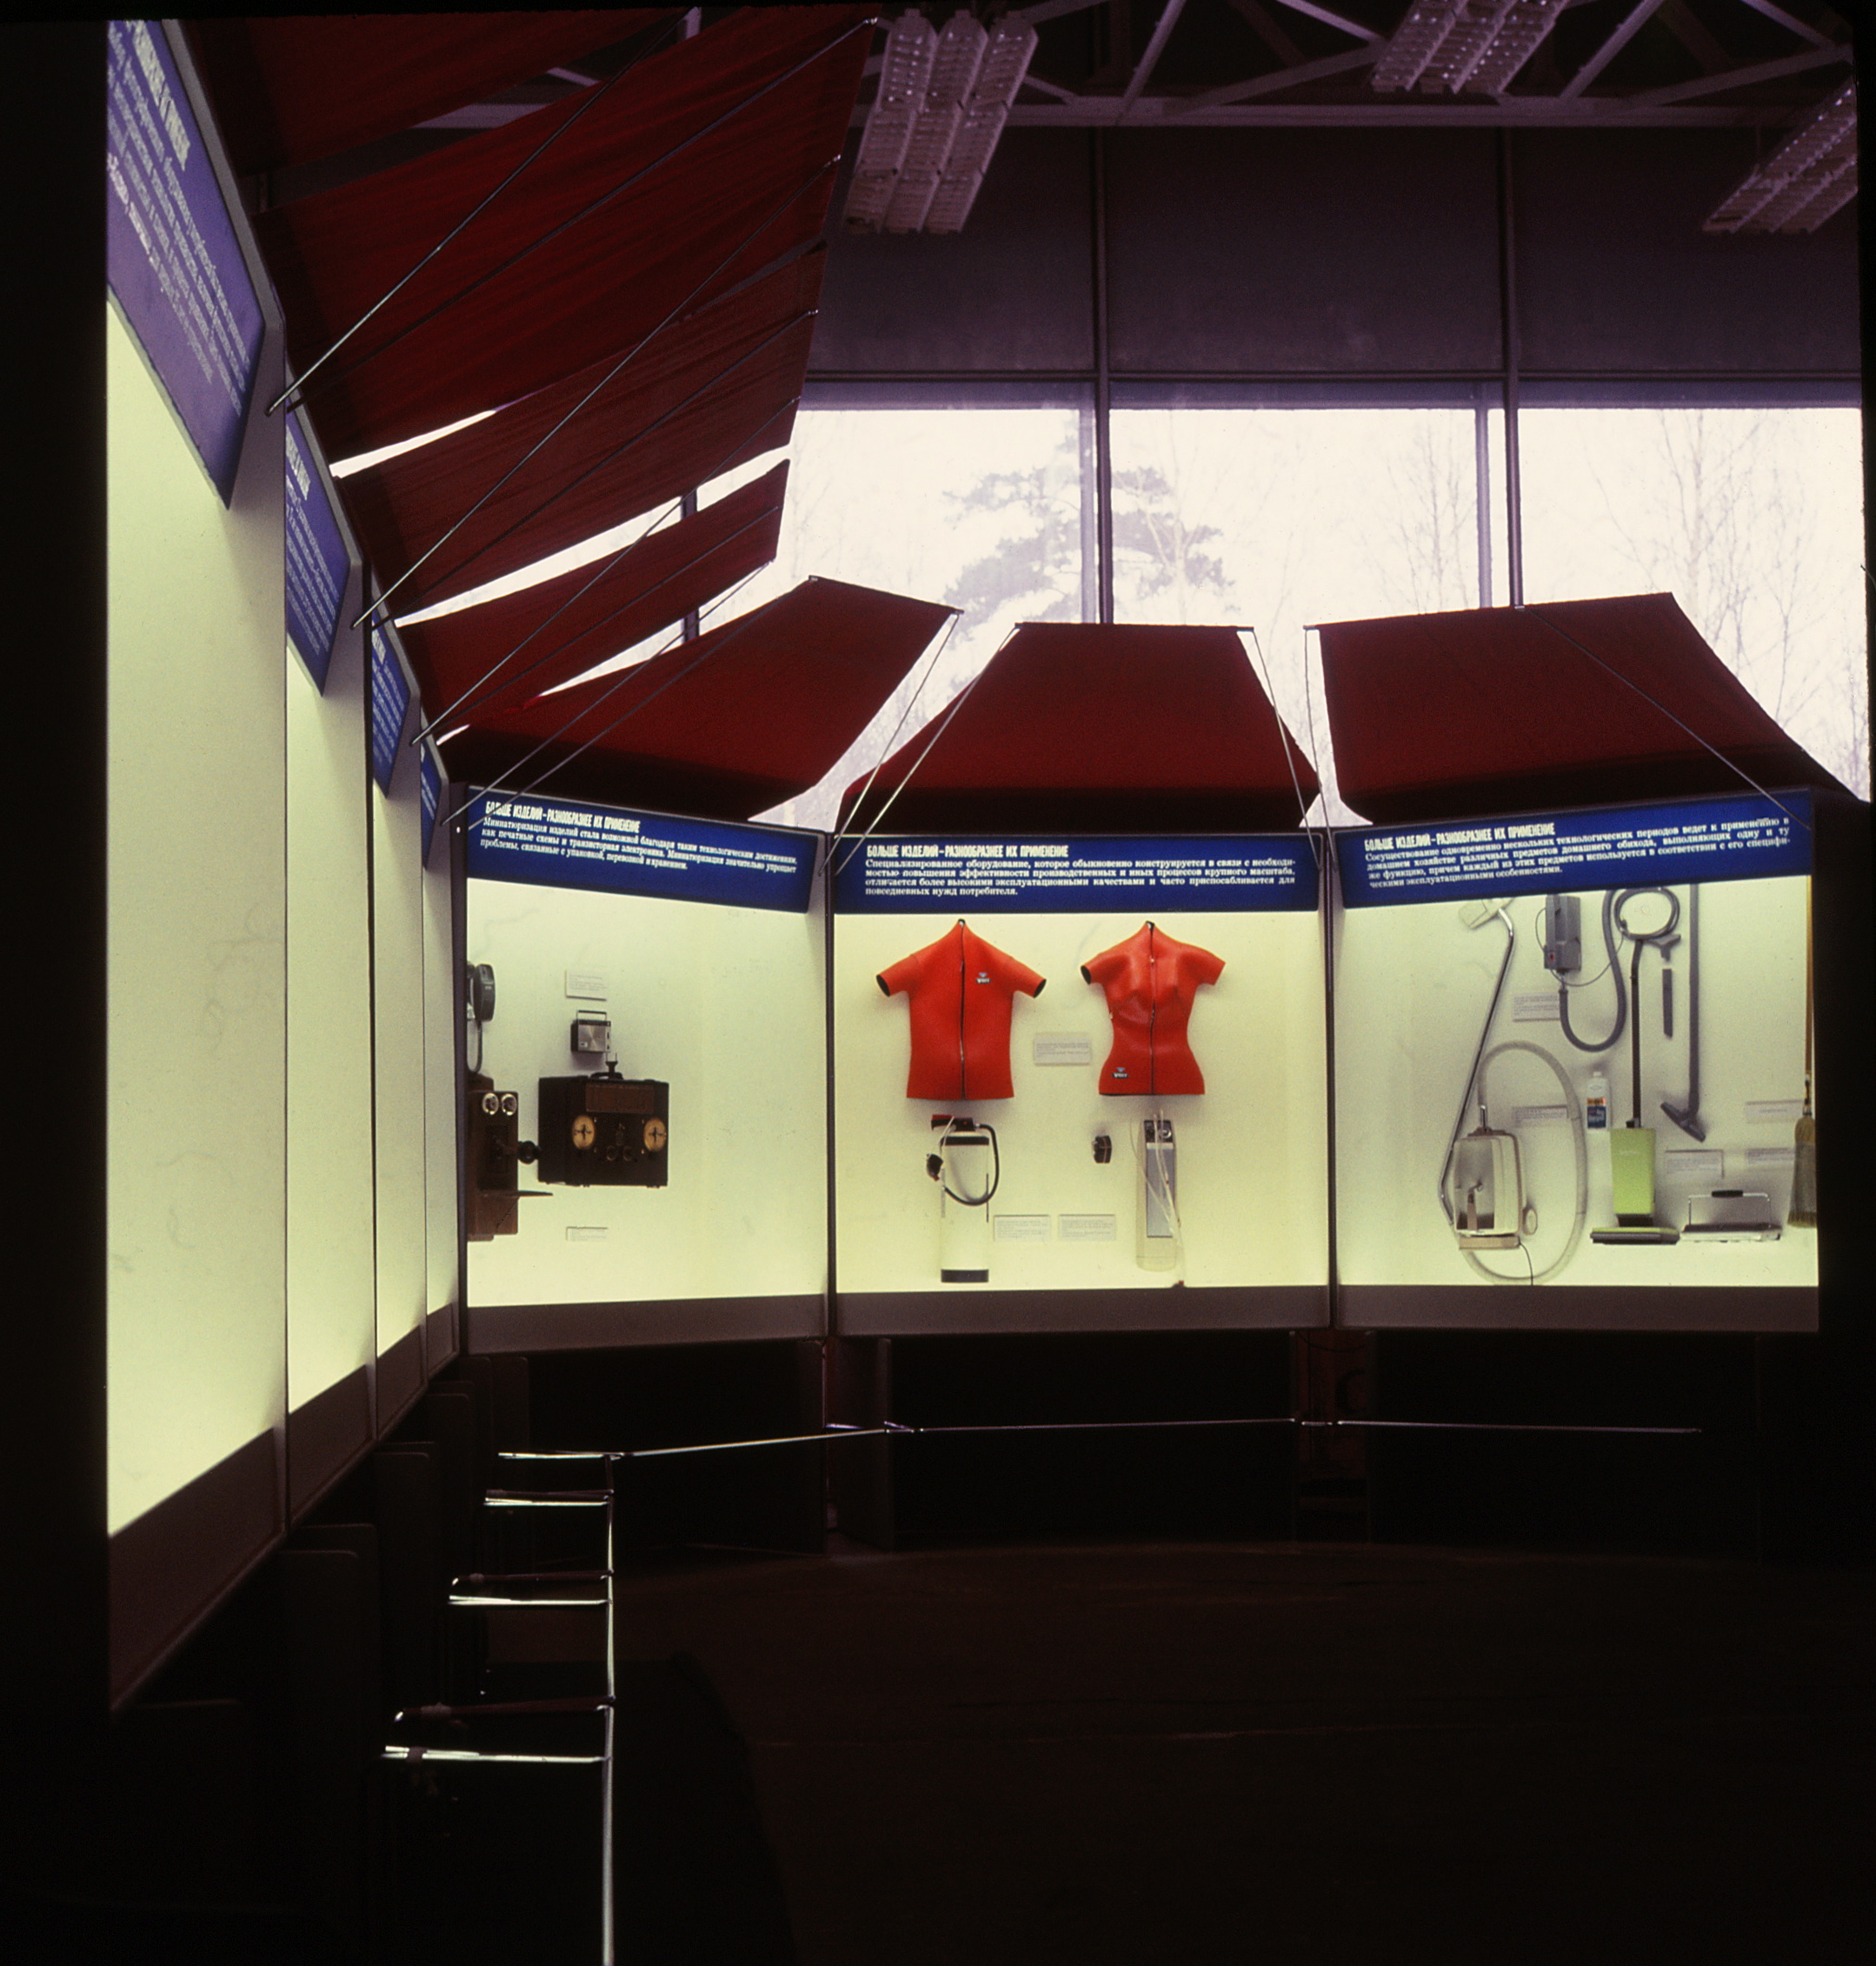 Display cases featuring vacuum cleaners.